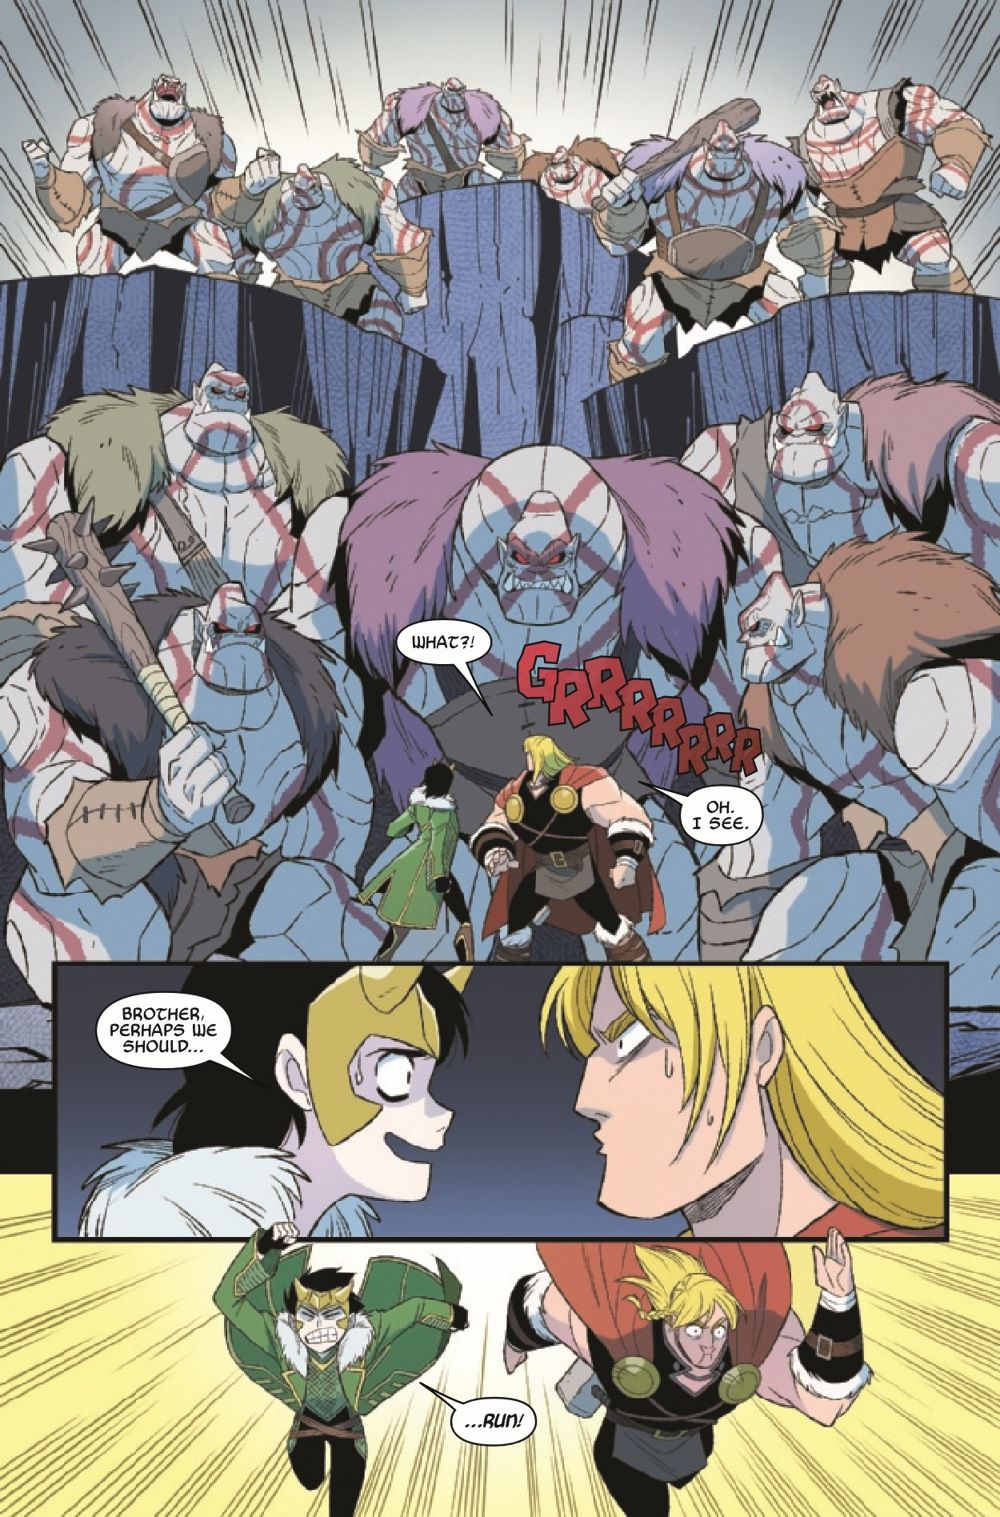 THORLOKIDT2021003_Preview-3 ComicList Previews: THOR AND LOKI DOUBLE TROUBLE #3 (OF 4)